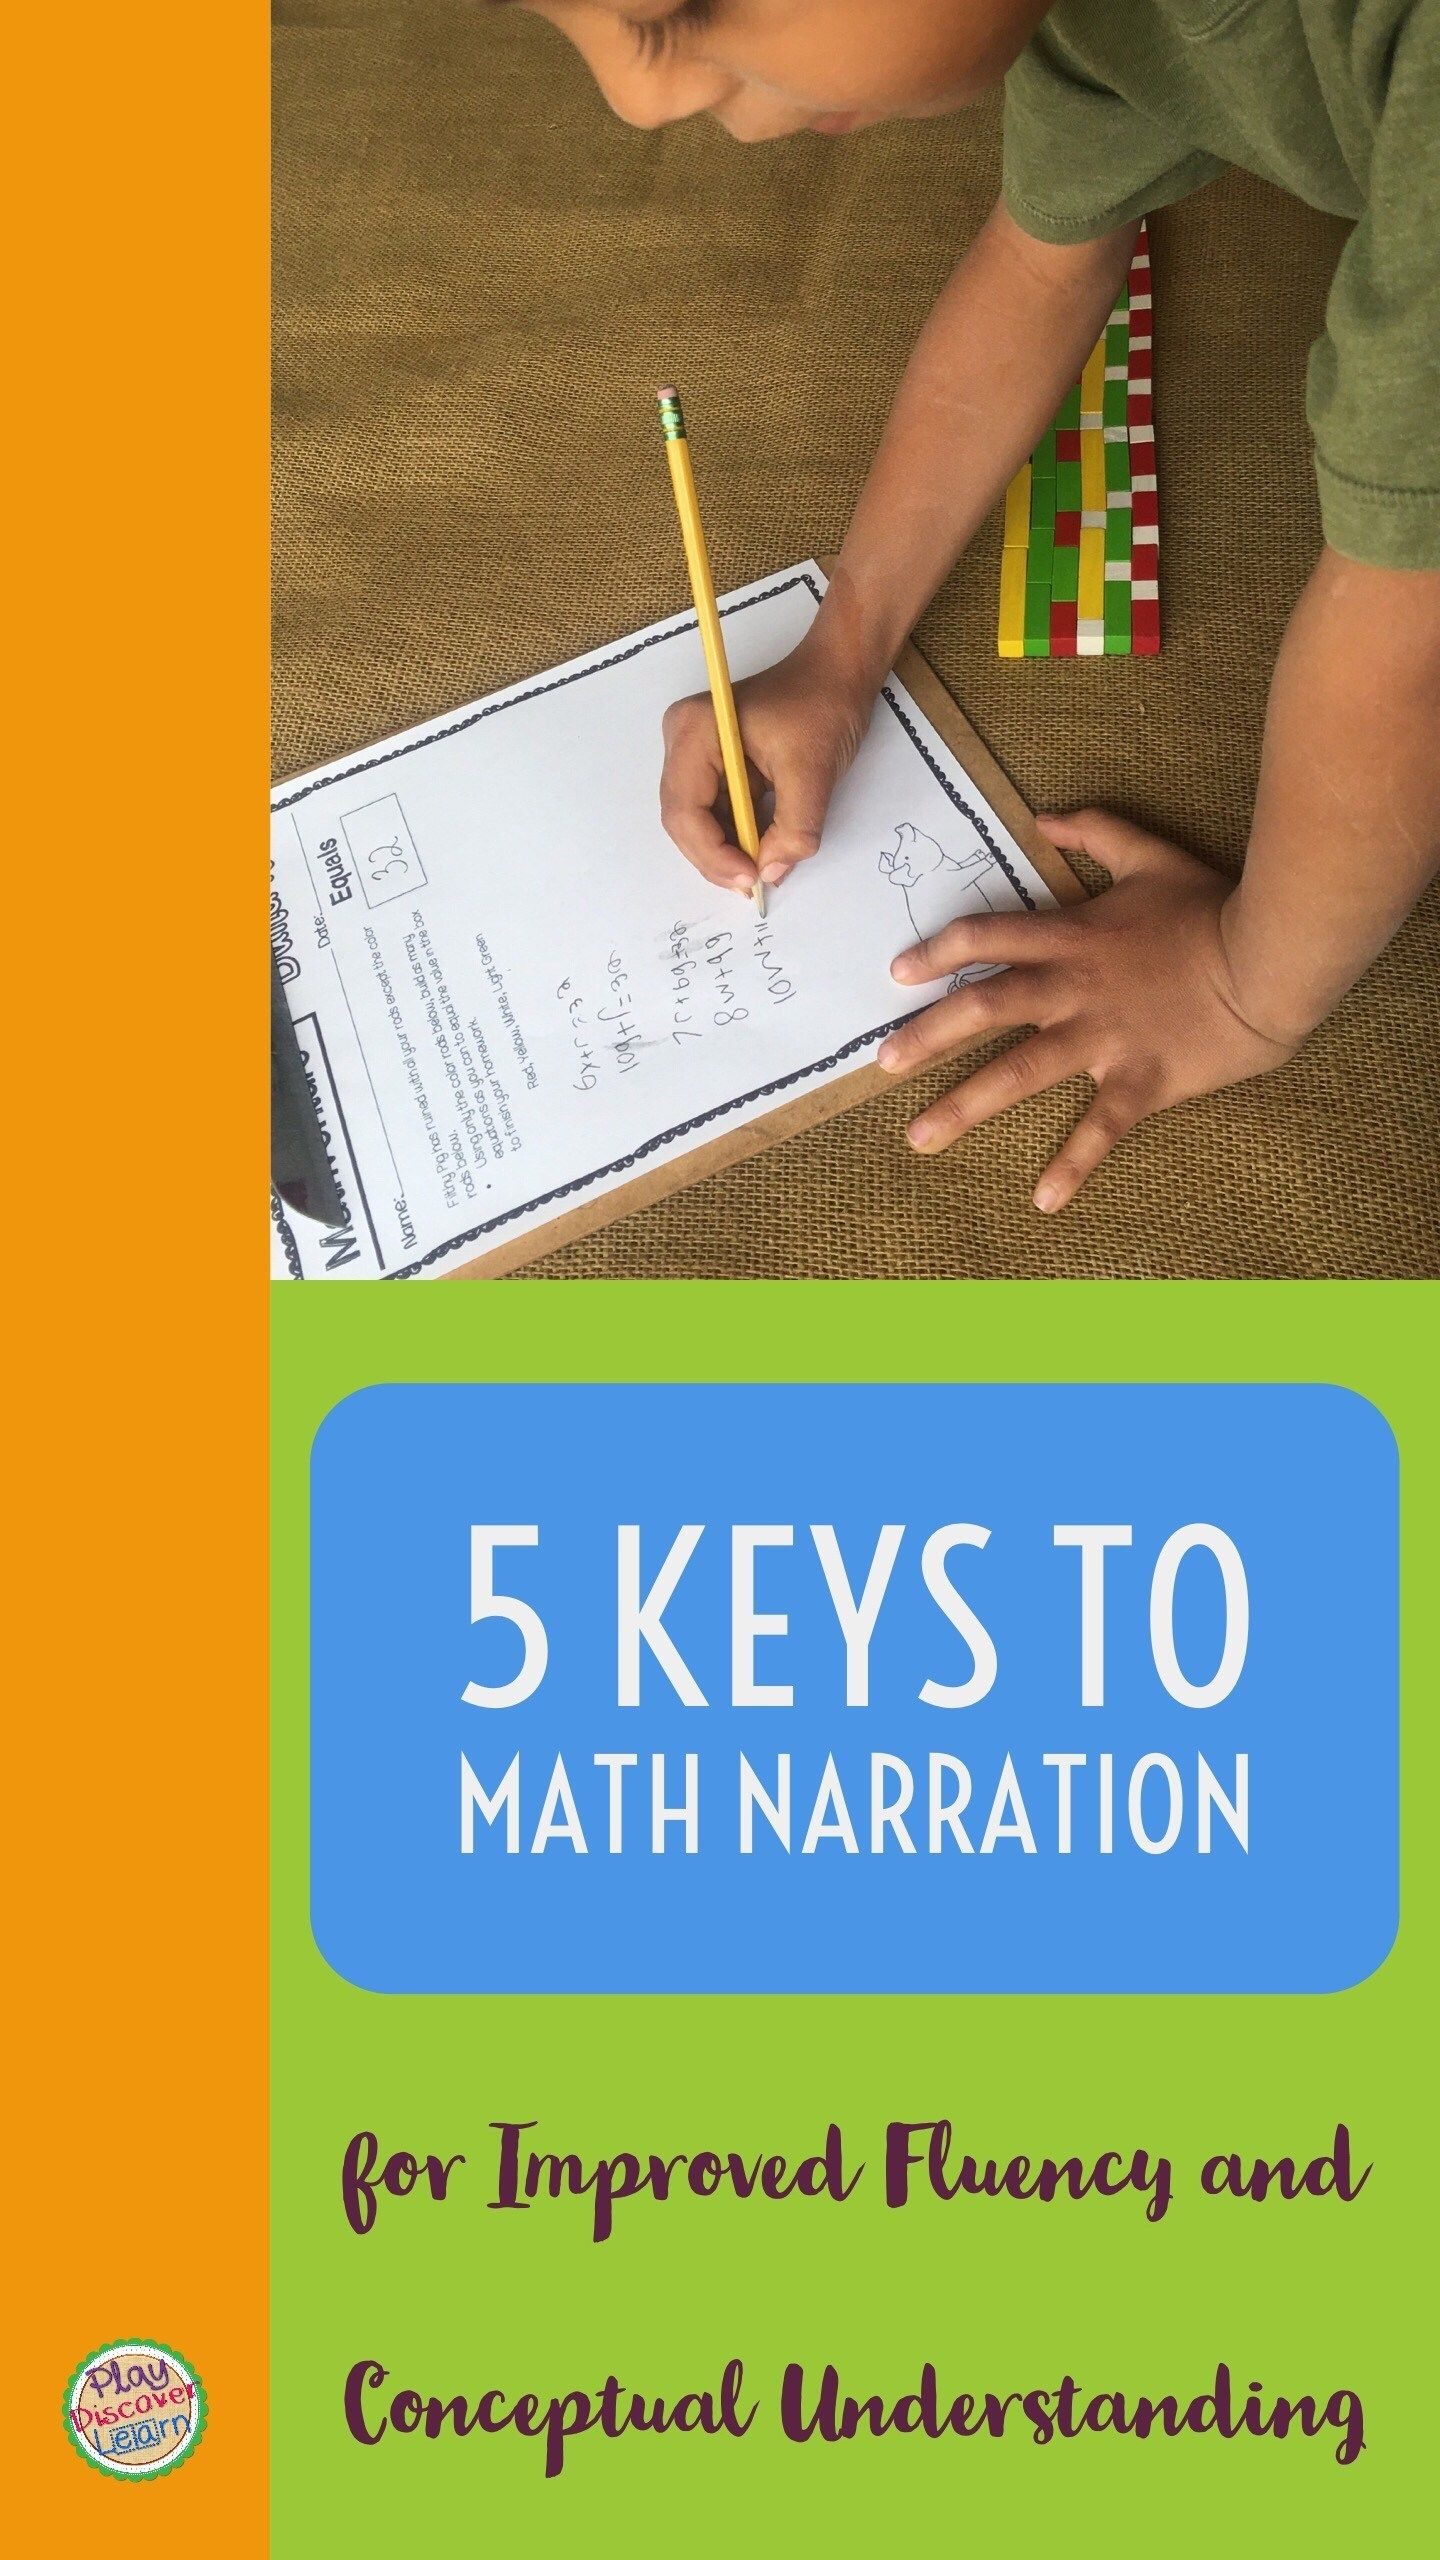 5 Keys To Math Narration For Improved Fluency And